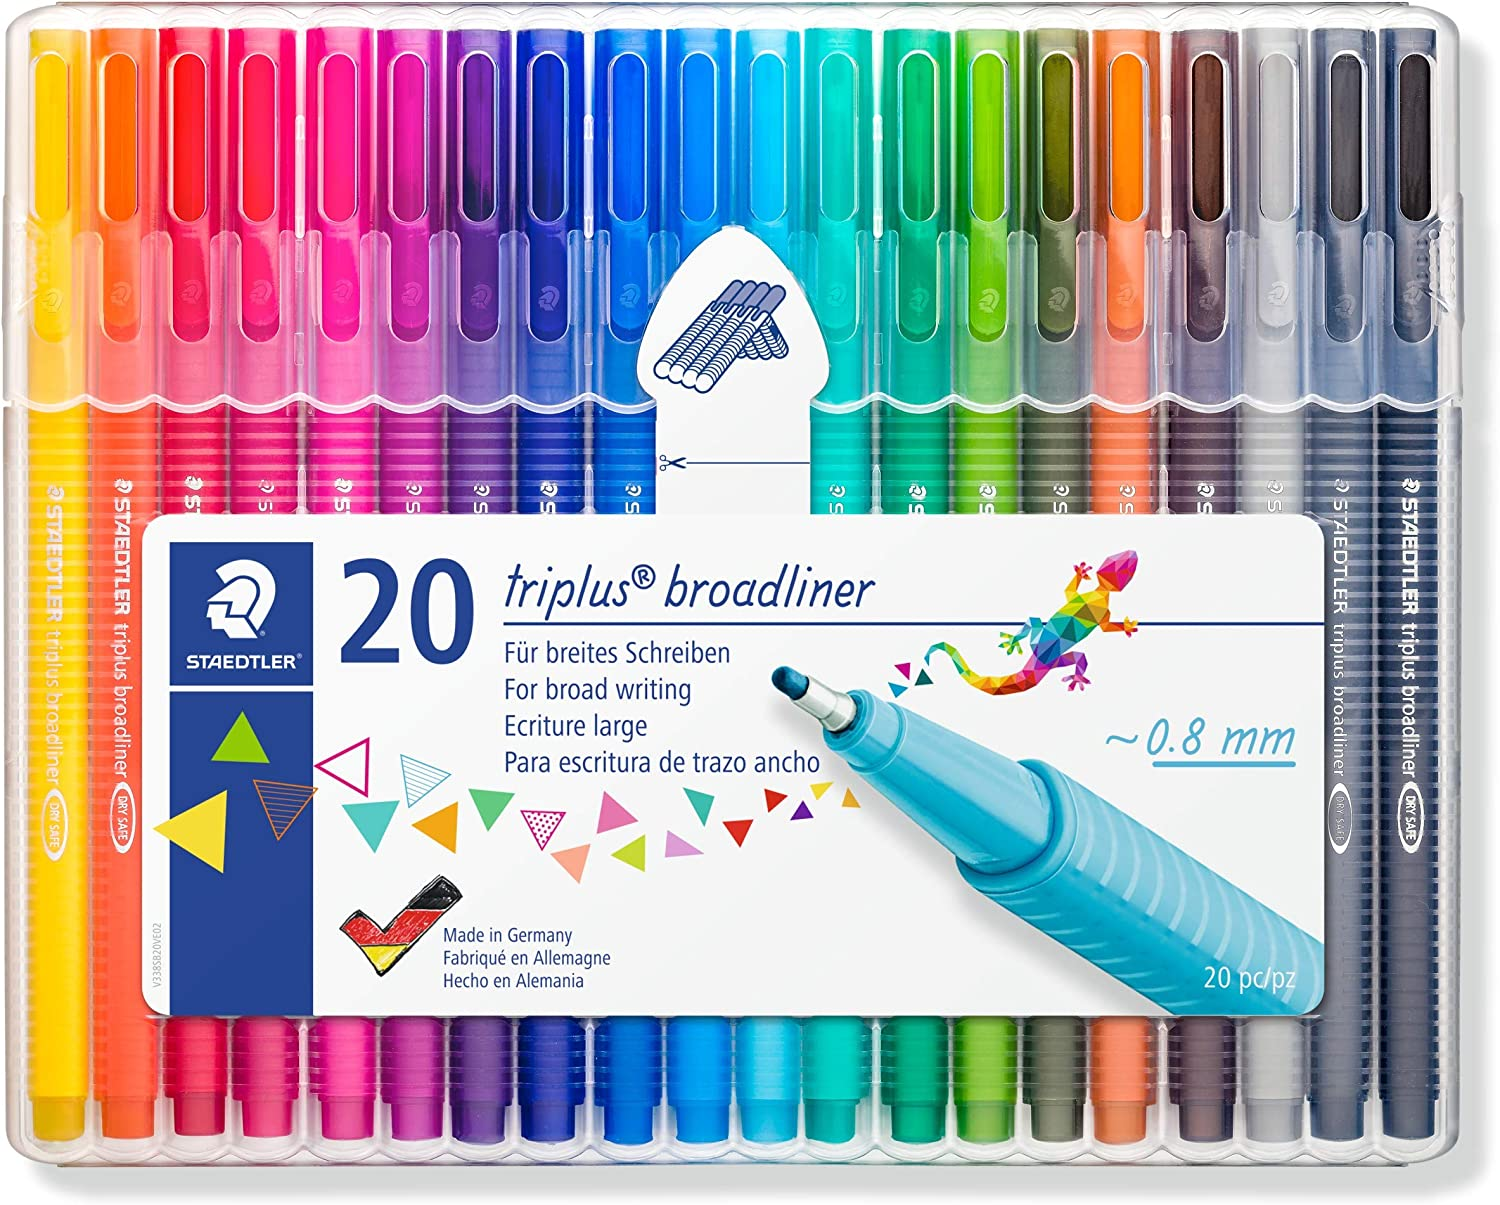 STAEDTLER 338 Triplus Broadliner, Assorted Colours, Pack of 20